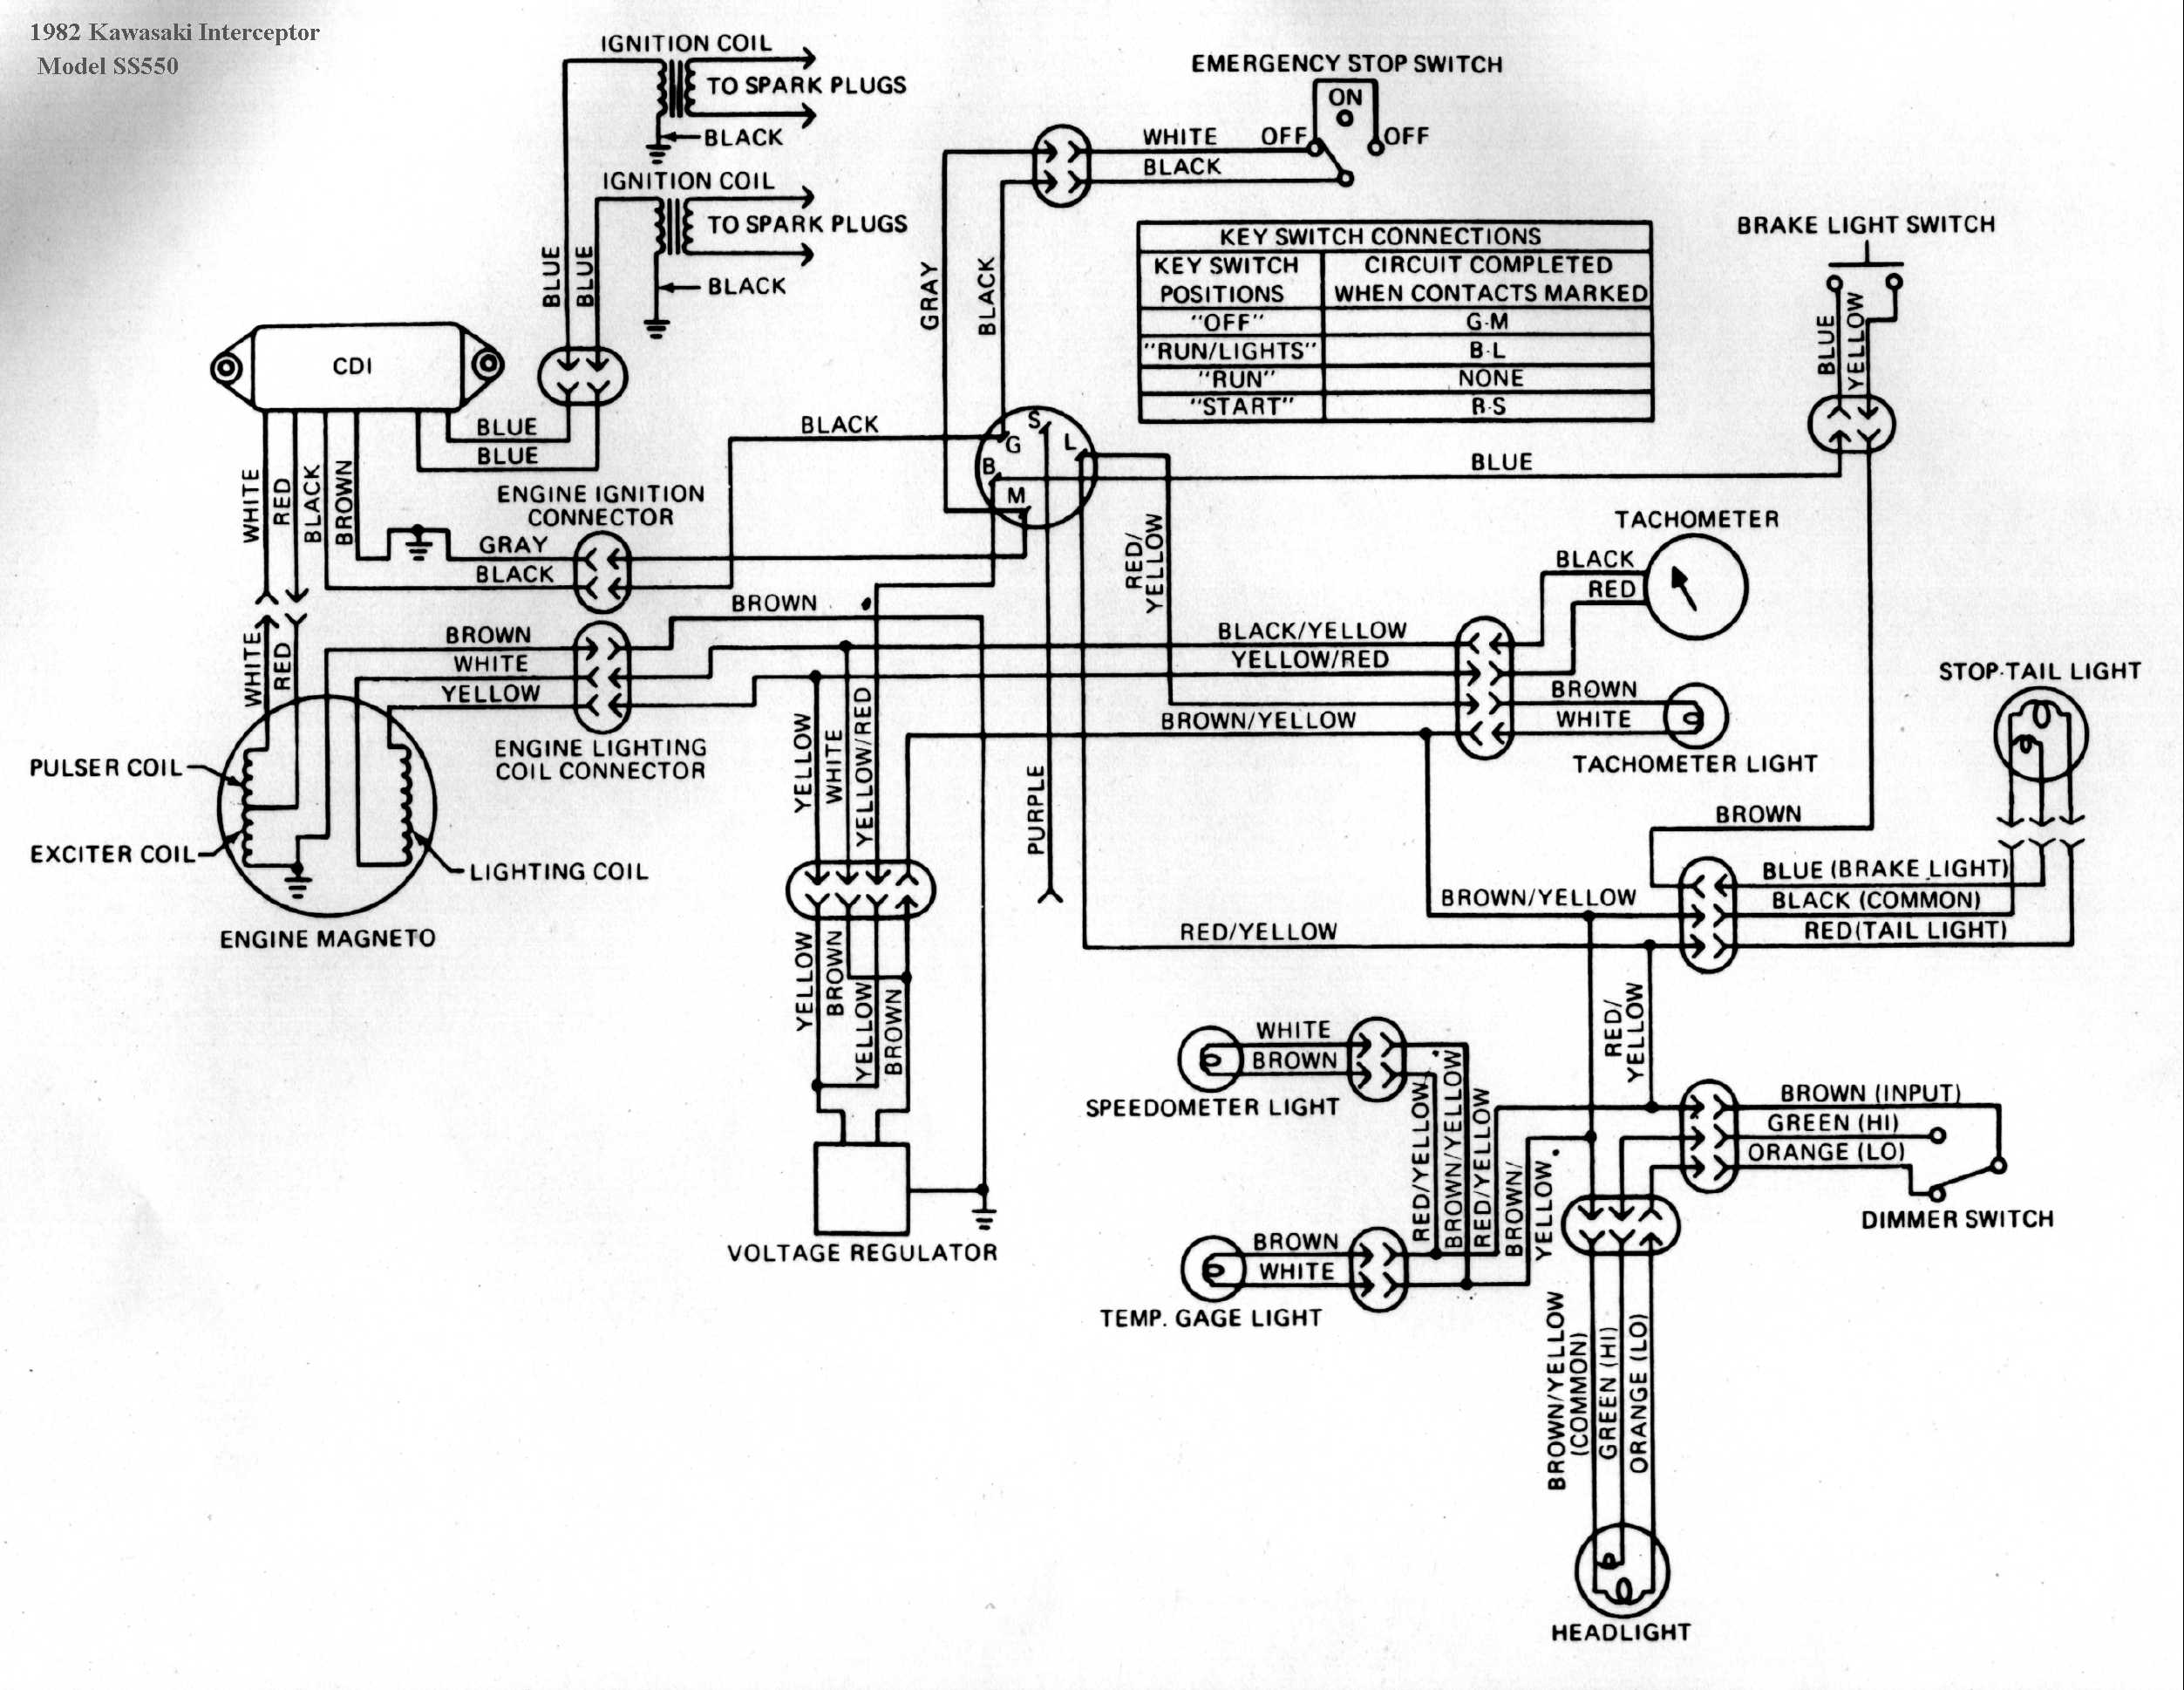 Kaw 220 Wiring Diagram Simple 20 Amp 220v Kawasaki Breaker